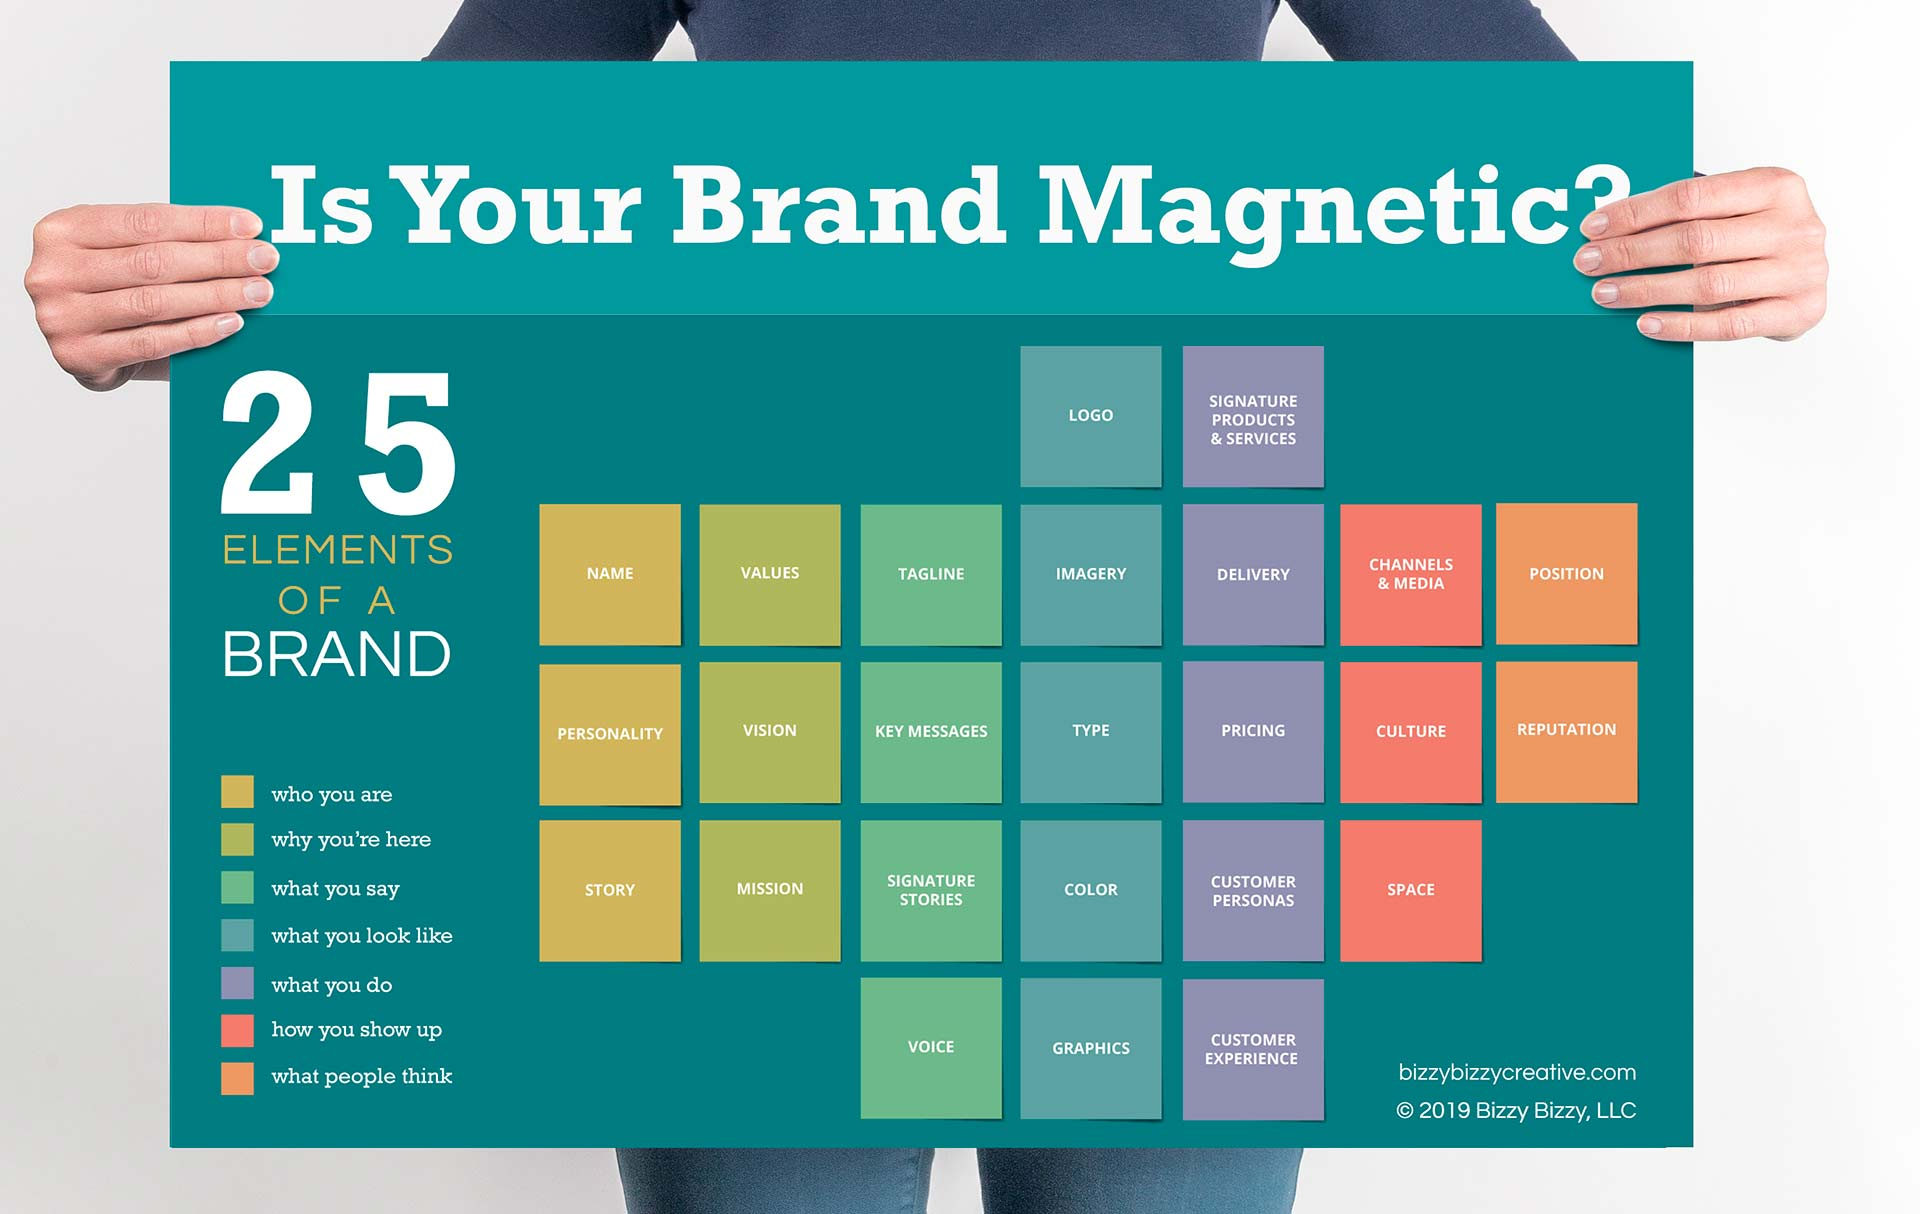 Woman holding poster of 25 Elements of a Brand Infographic